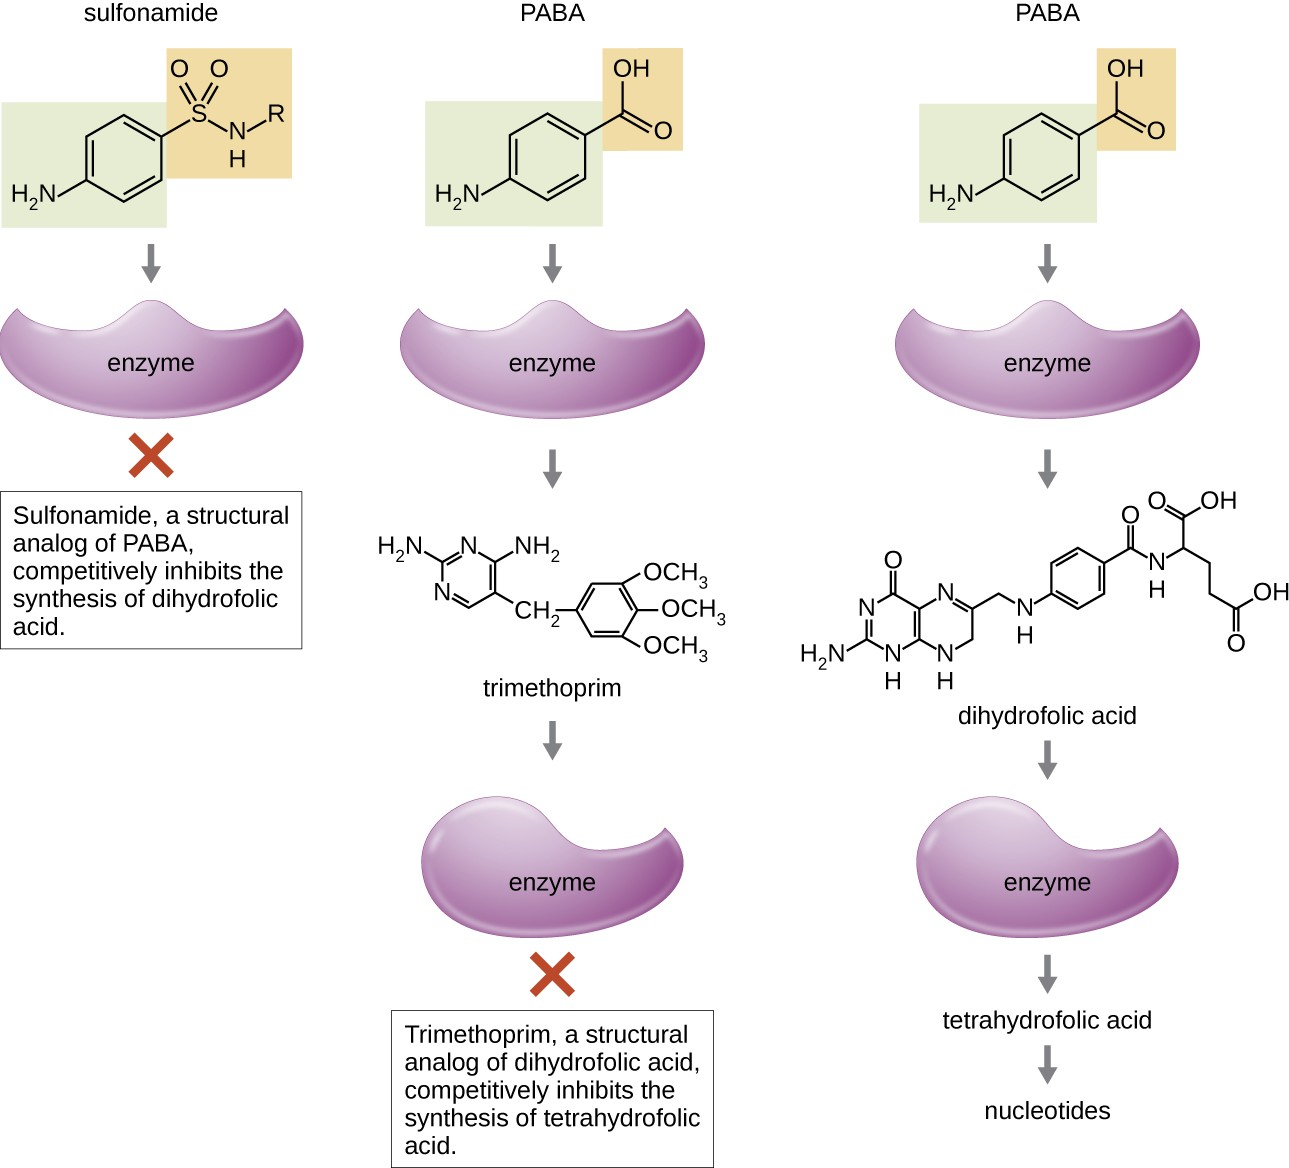 Sulfonamides and trimethoprim are examples of antimetabolites that interfere in the bacterial synthesis of folic acid by blocking purine and pyrimidine biosynthesis, thus inhibiting bacterial growth.